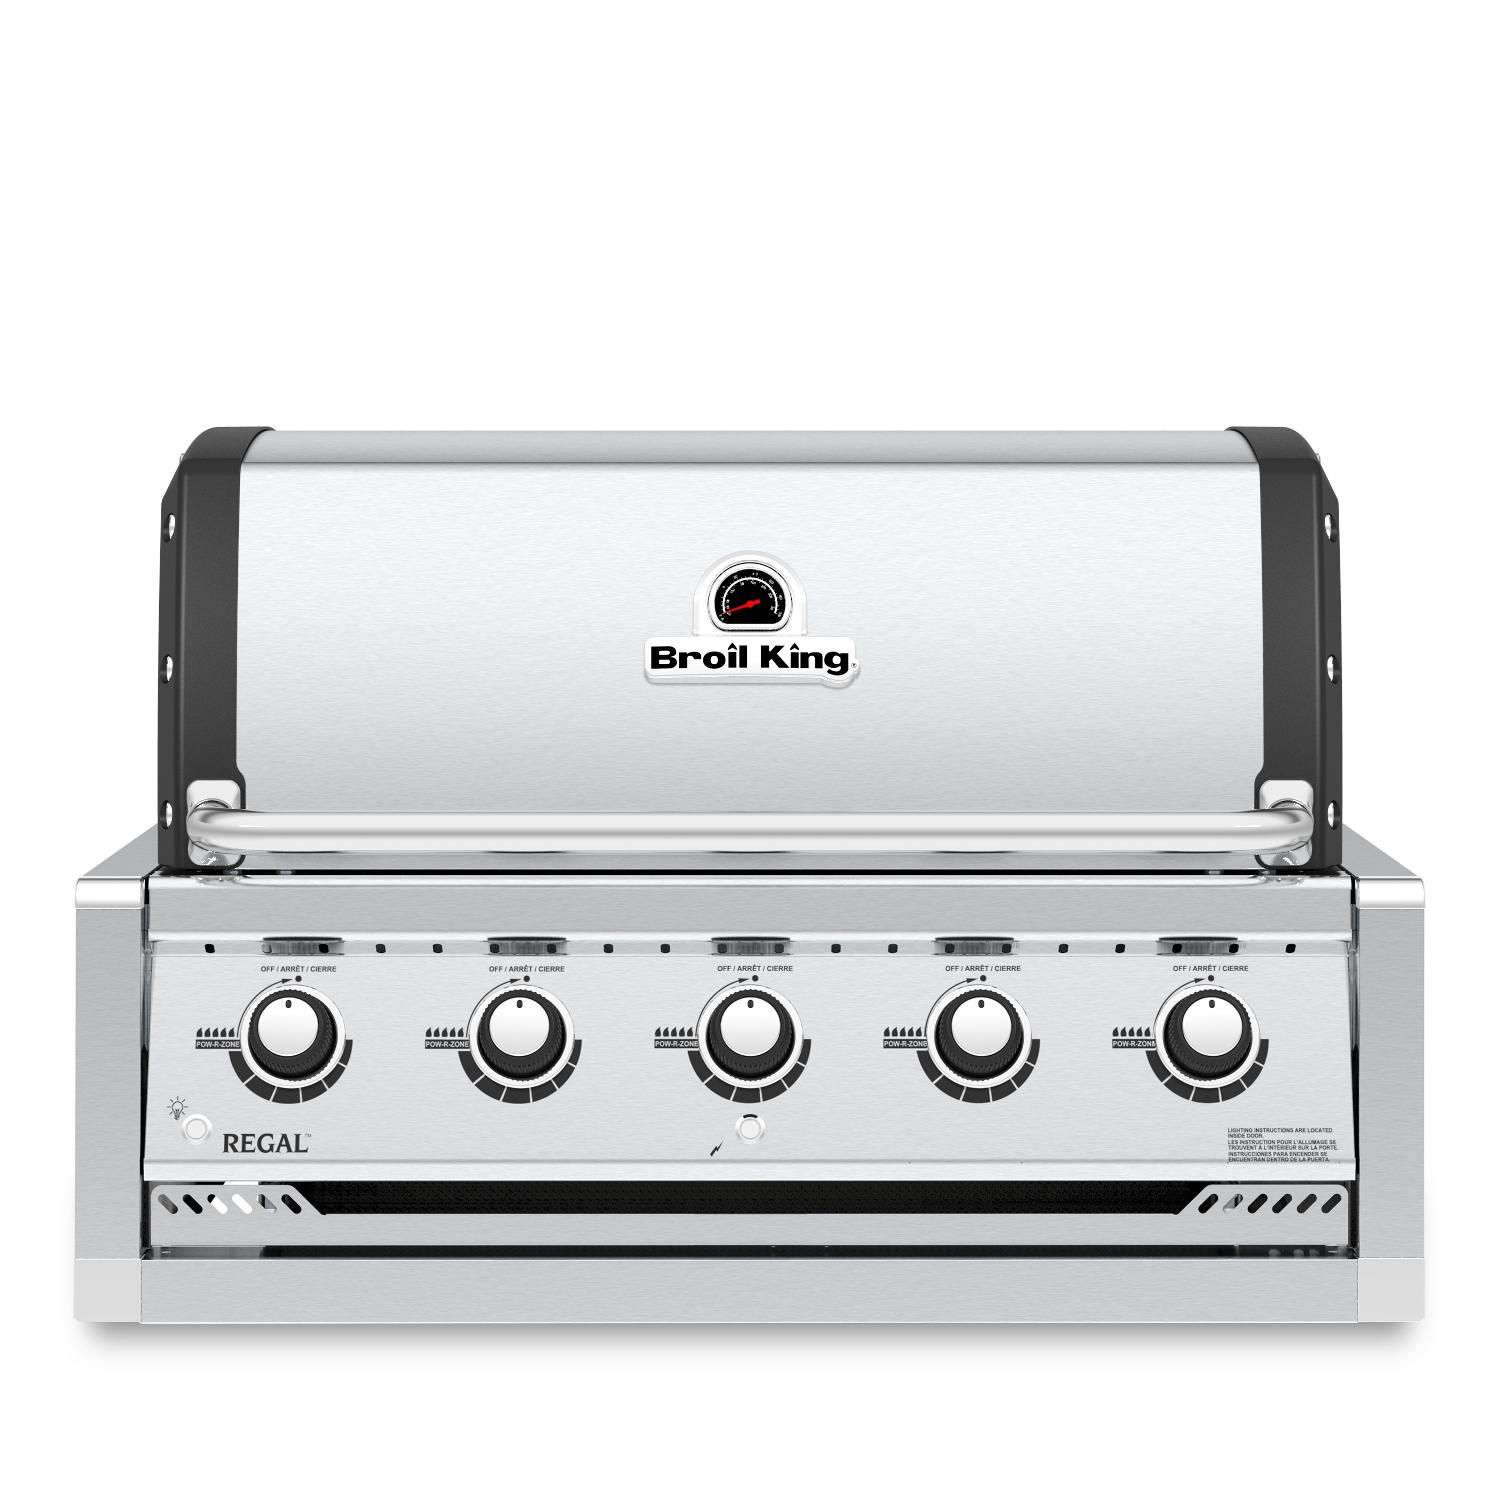 Broil King Regal S520 5-burner Built-in Propane Gas Grill - Stainless Steel - 886714